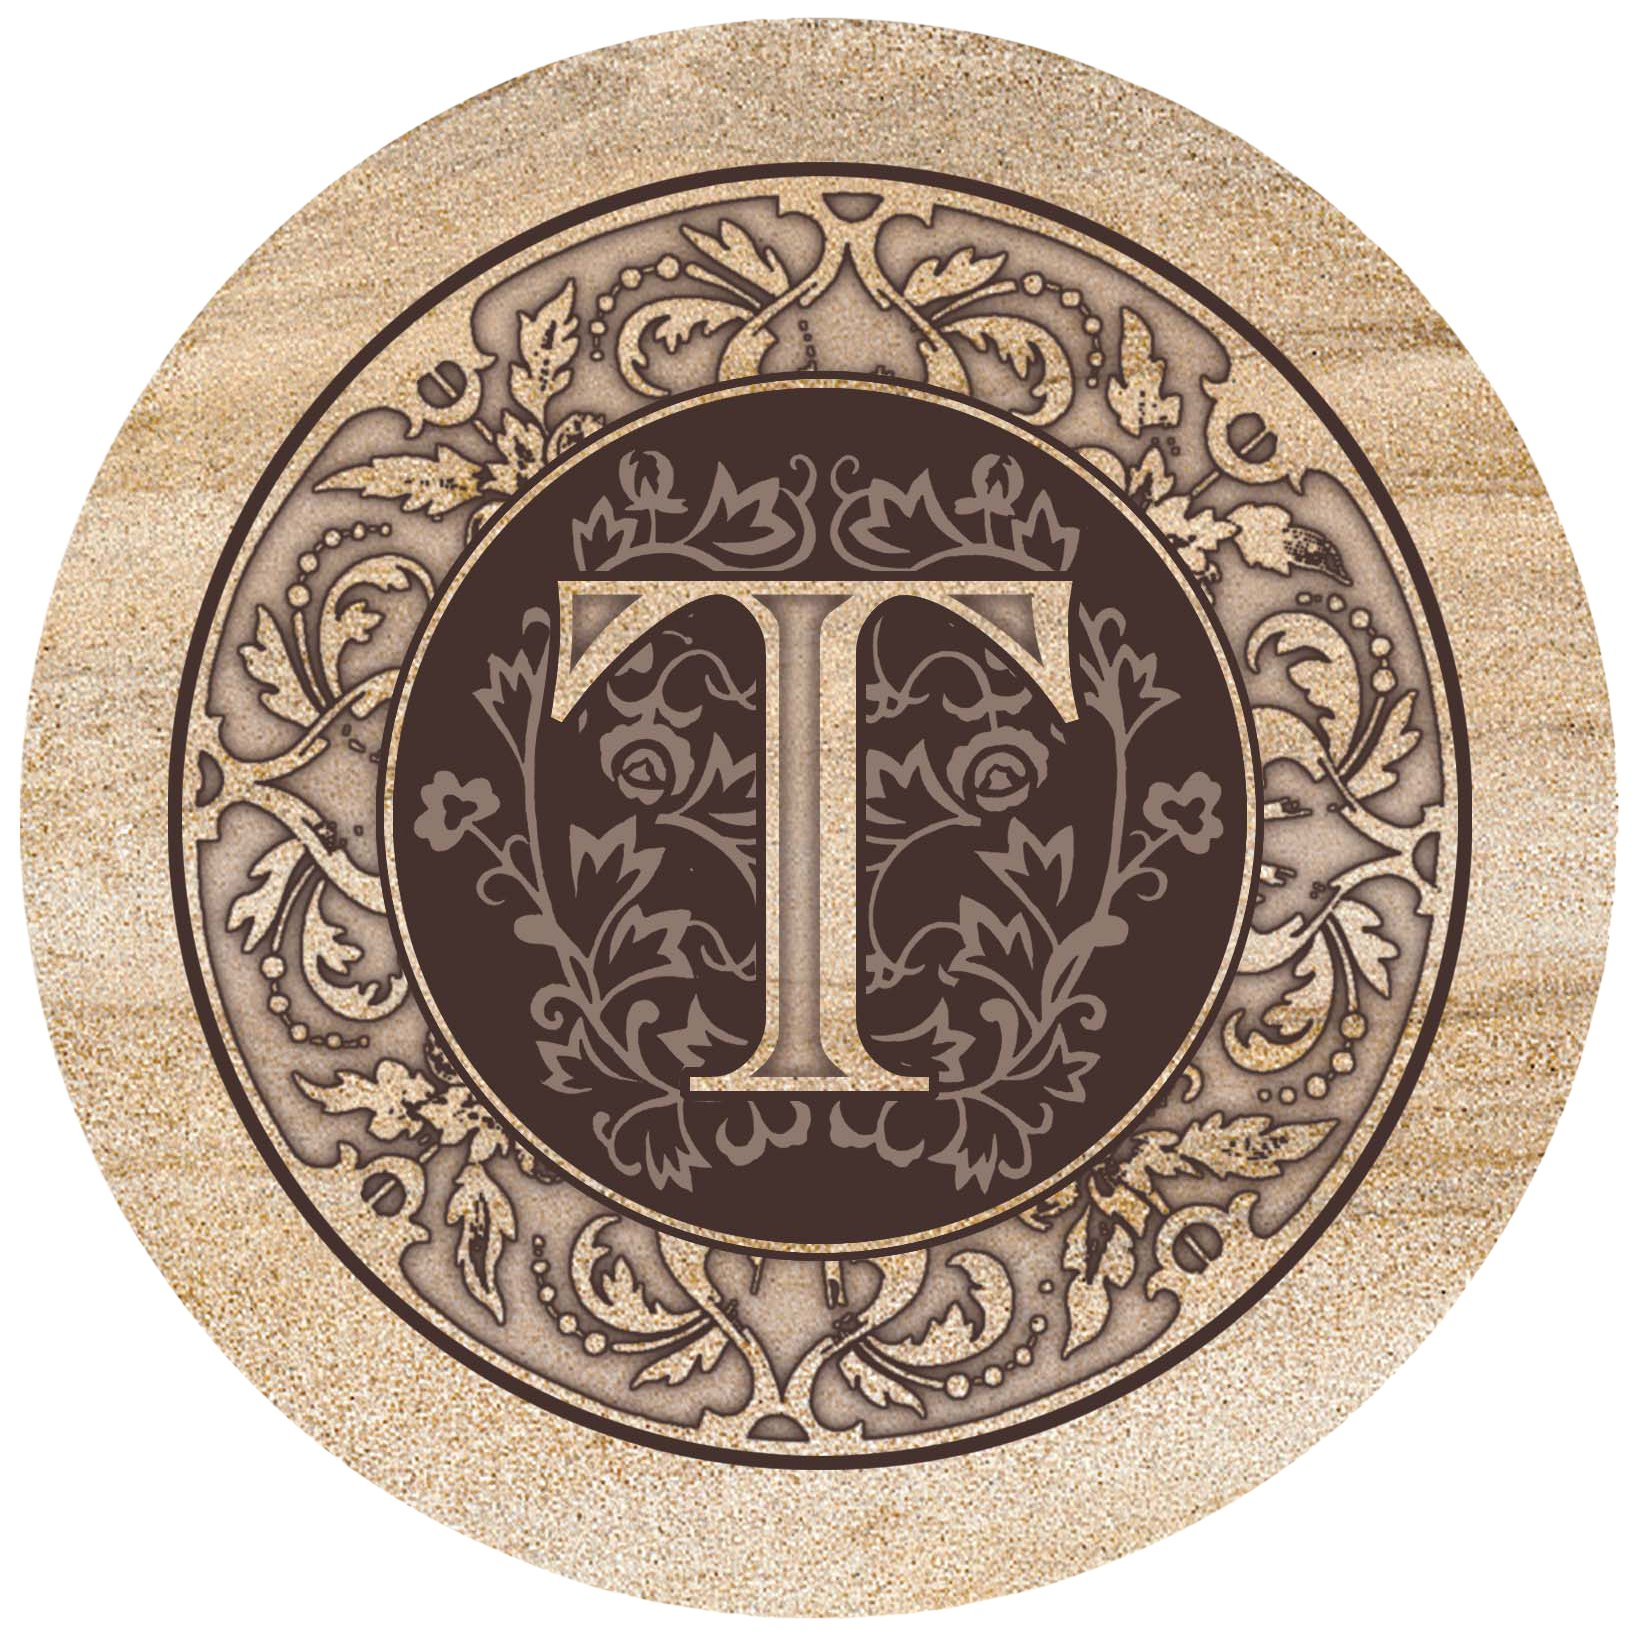 Thirstystone Drink Coaster Set, Monogrammed Letter T